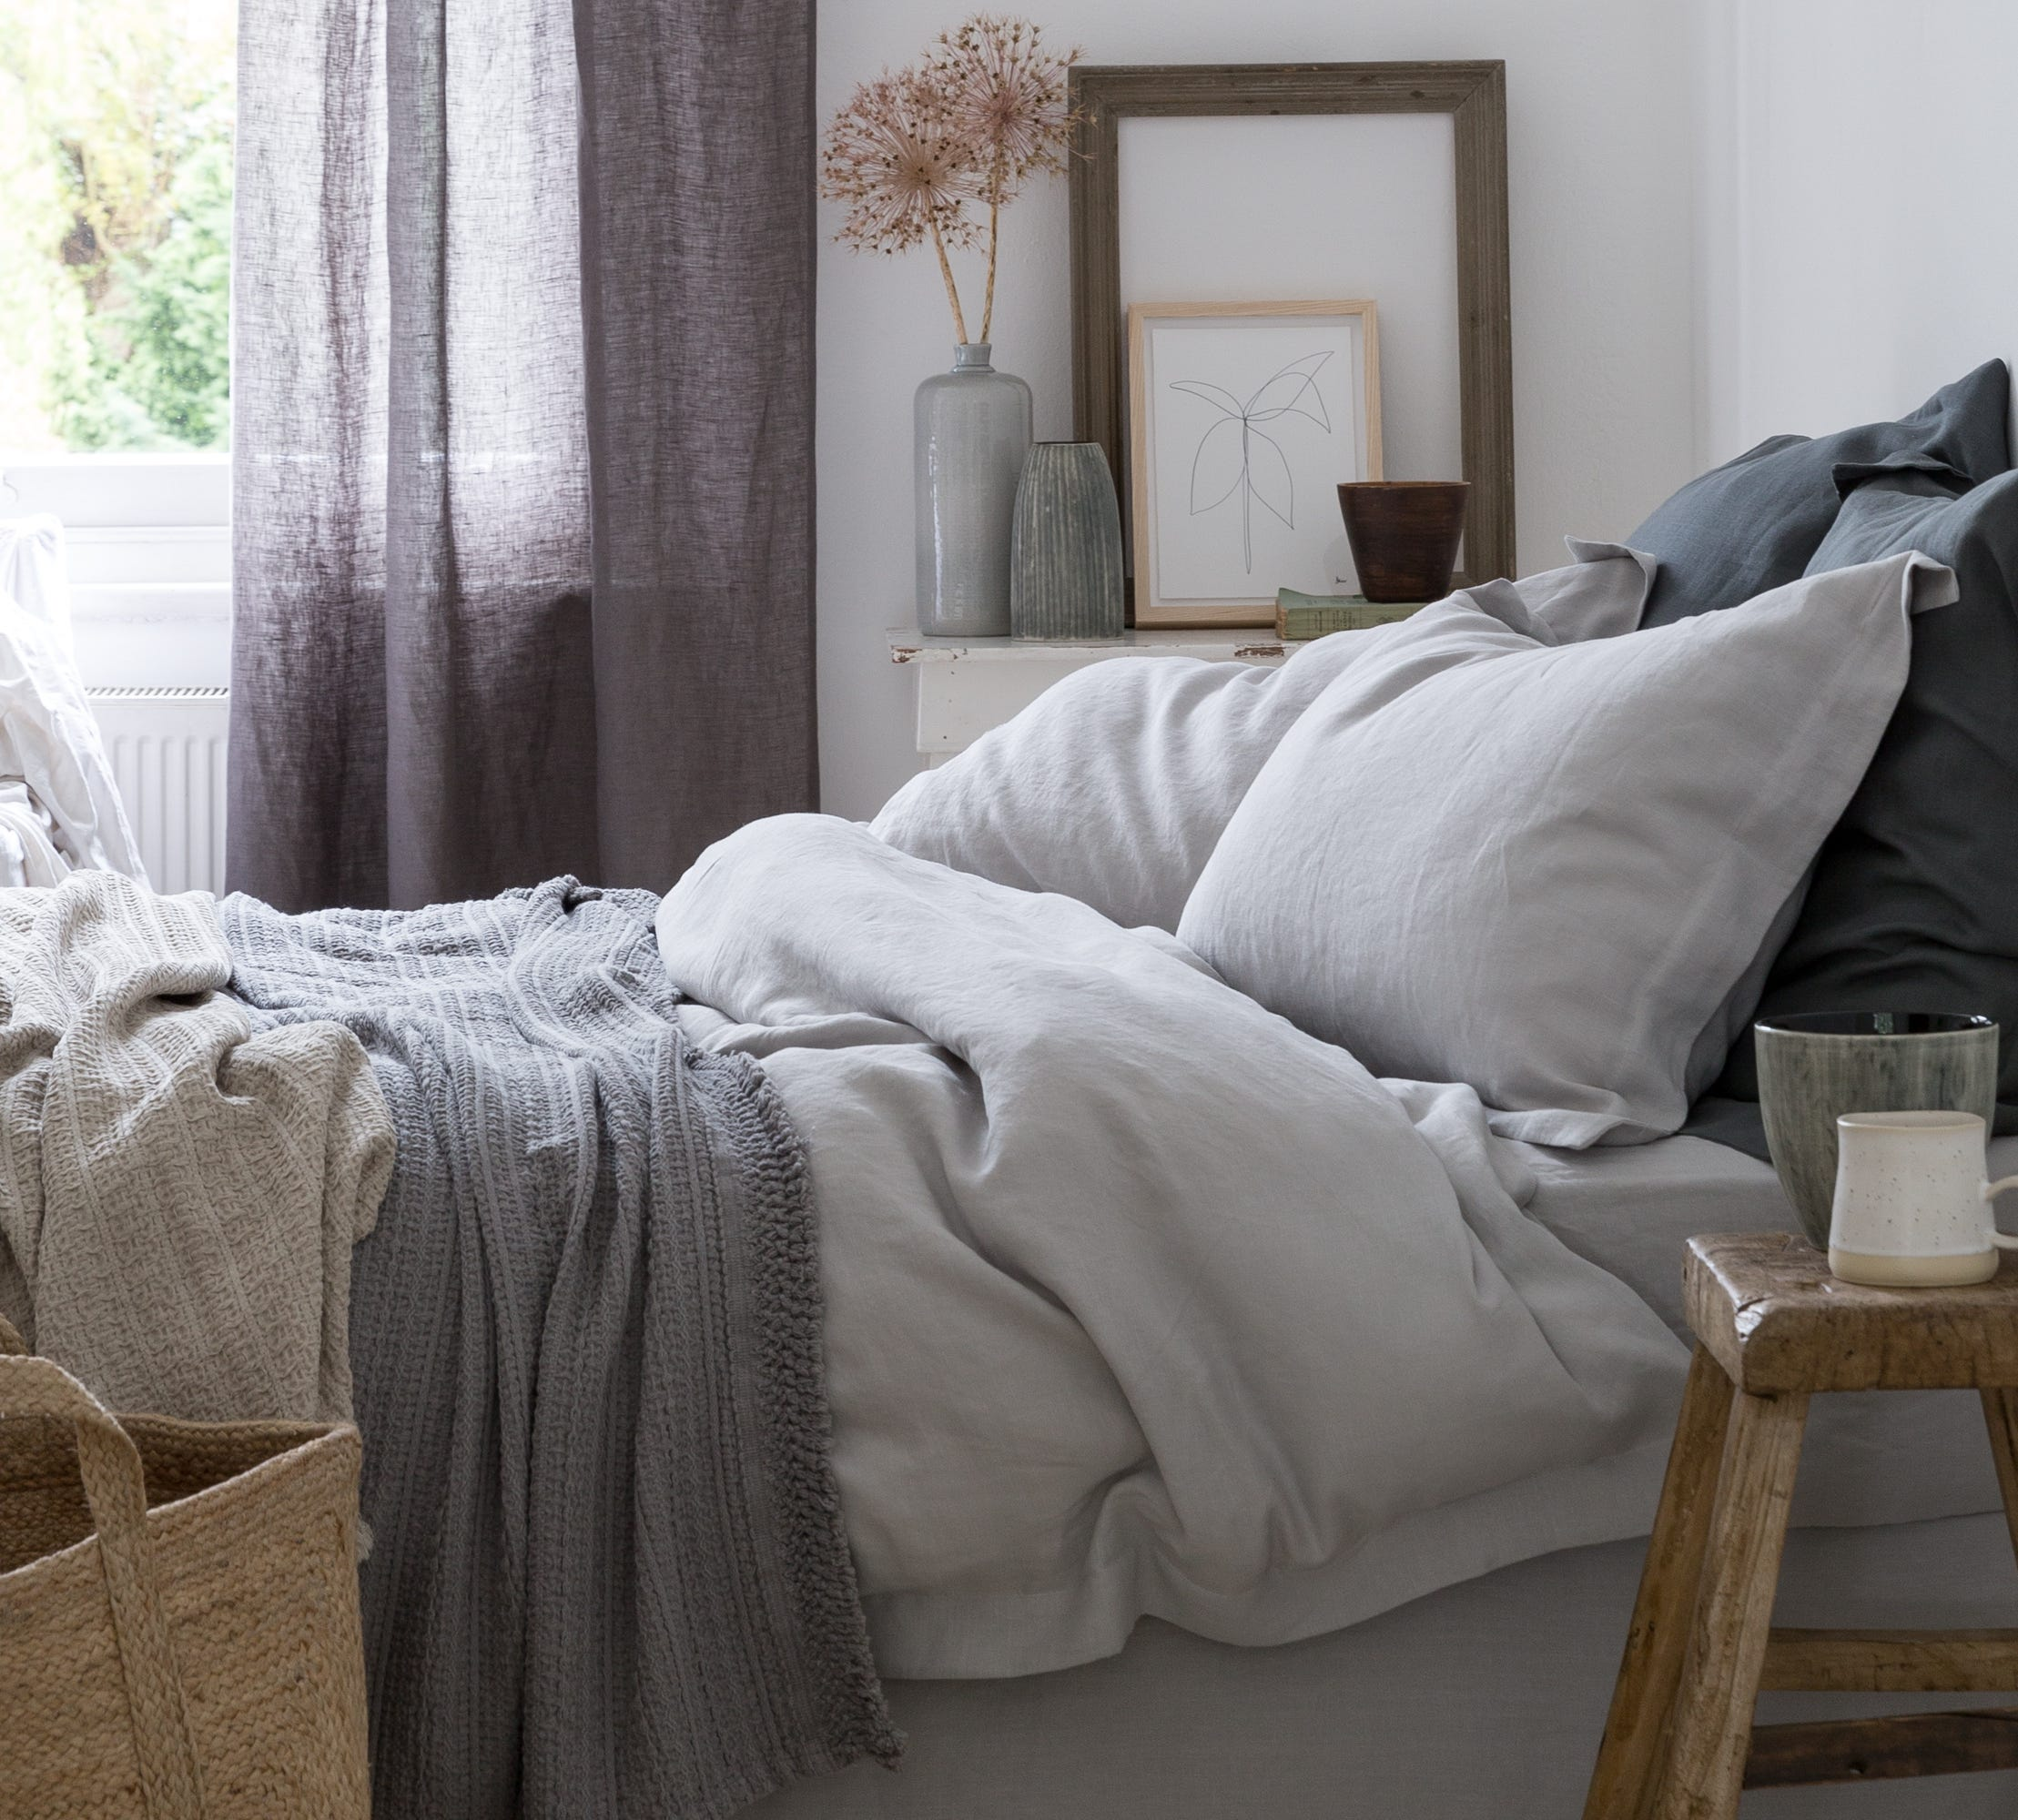 Image of a bedroom with bed linen from Soak&Sleep